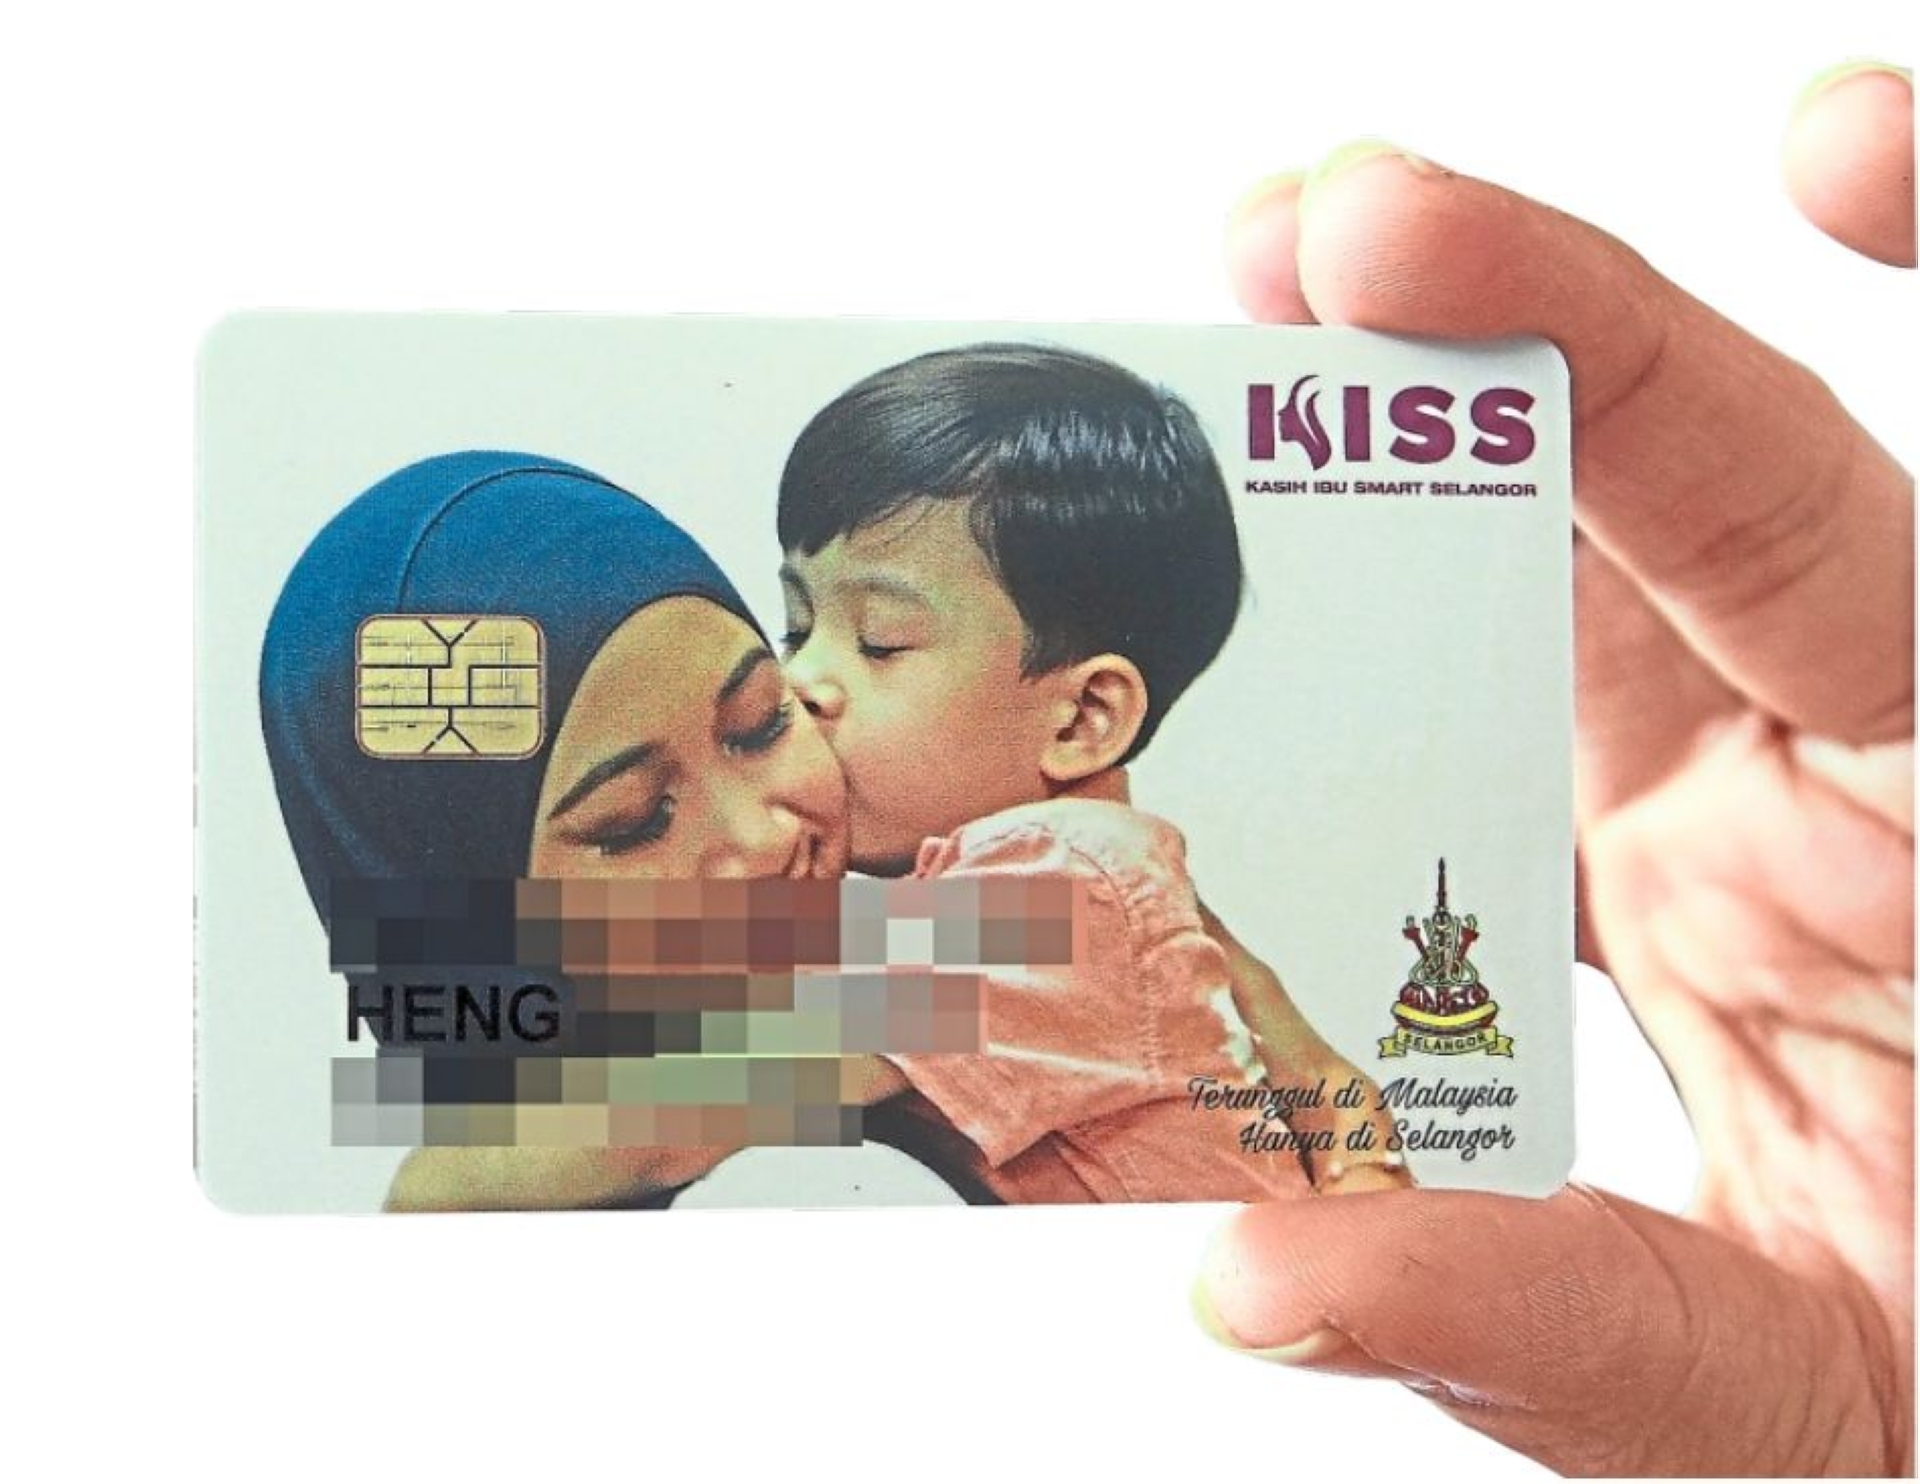 An additional 5,000 people will receive benefits with the KISS card, bringing the total to 25,000. — Filepic